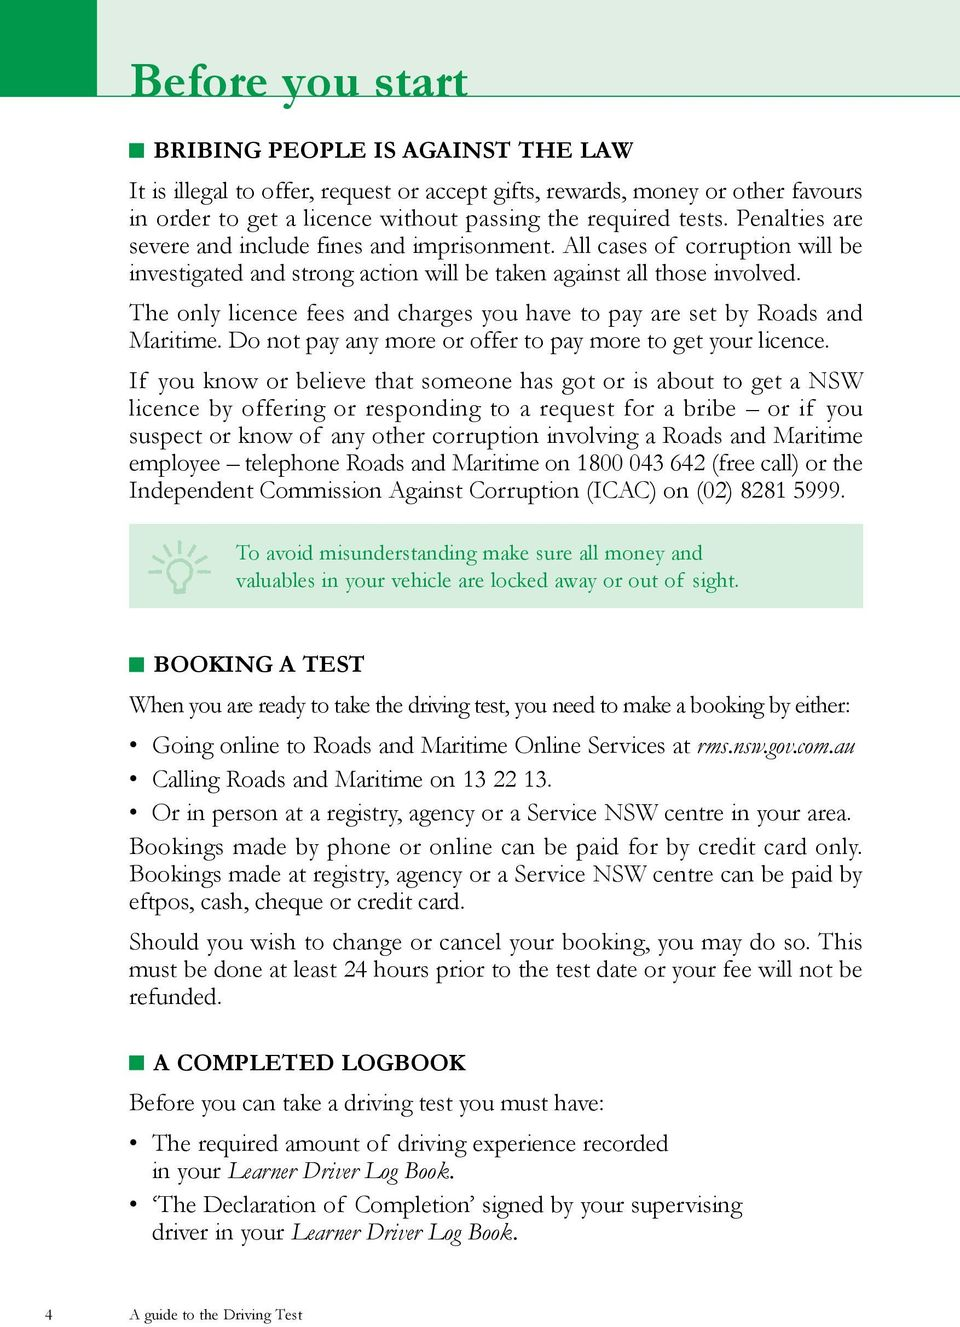 The only licence fees and charges you have to pay are set by Roads and Maritime. Do not pay any more or offer to pay more to get your licence.